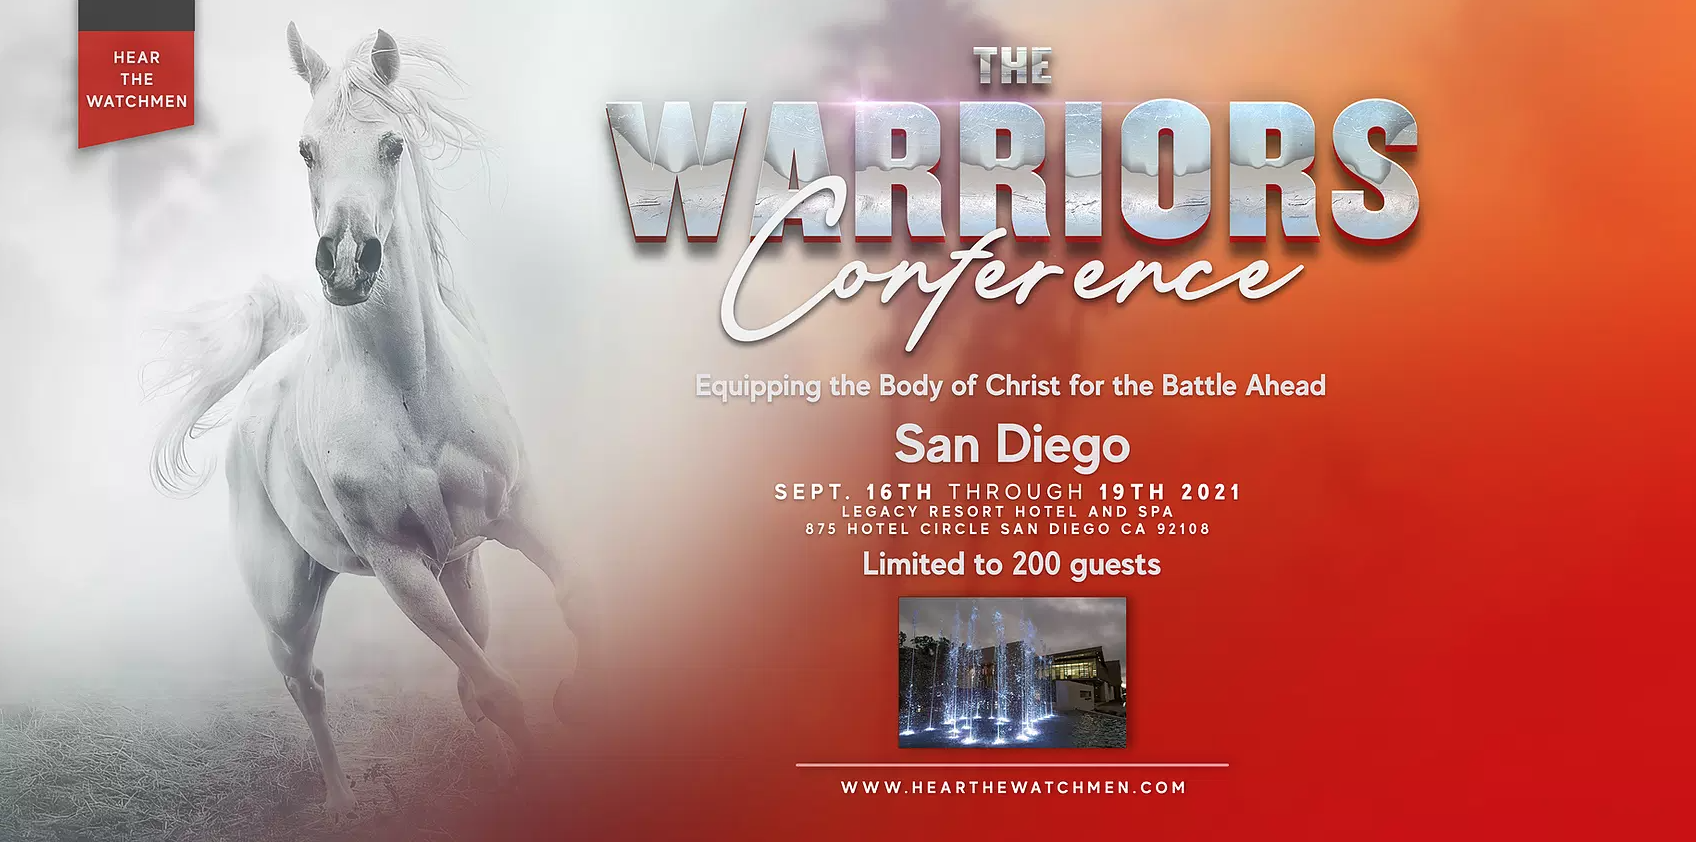 HEAR THE WATCHMAN: WARRIOR'S CONFERENCE LIVE EVENT